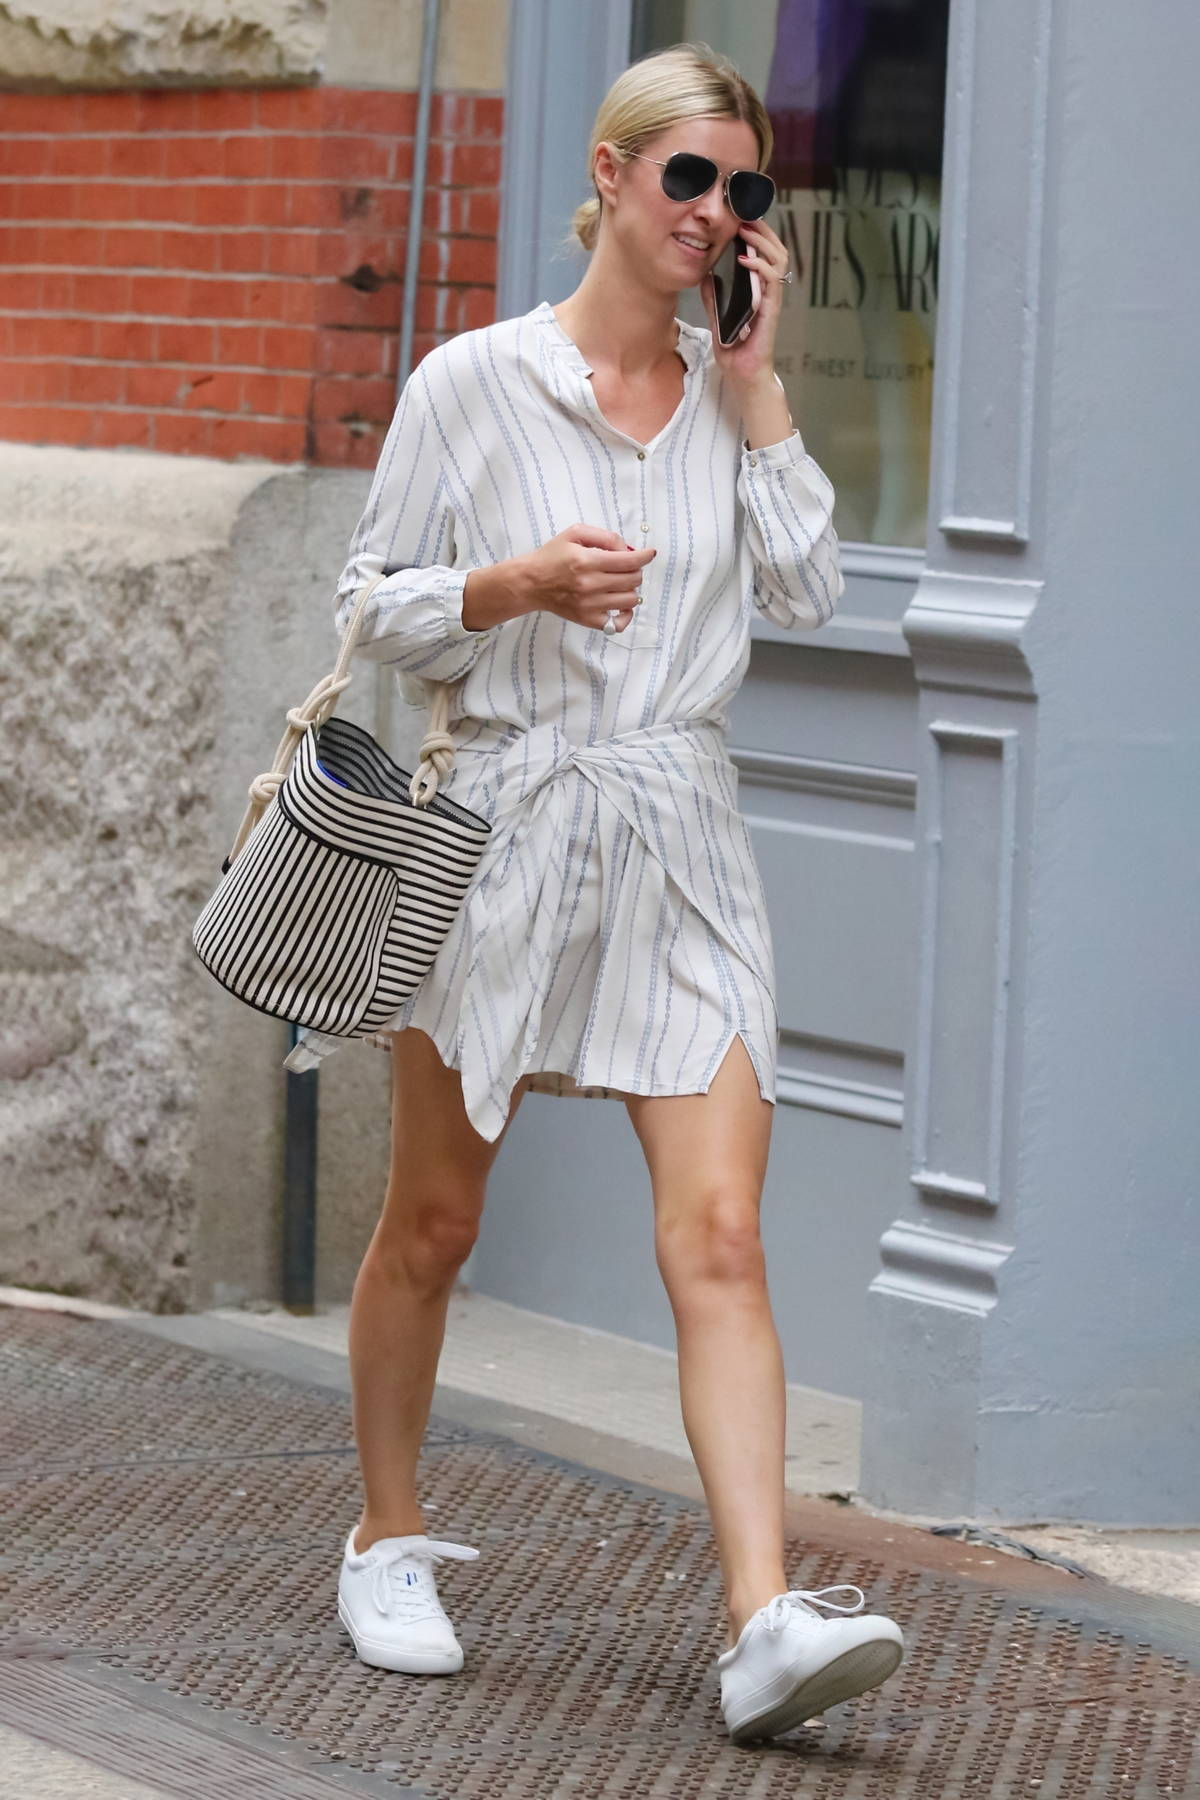 Nicky Hilton looks stylish in all white while out running errands in SoHo, New York City